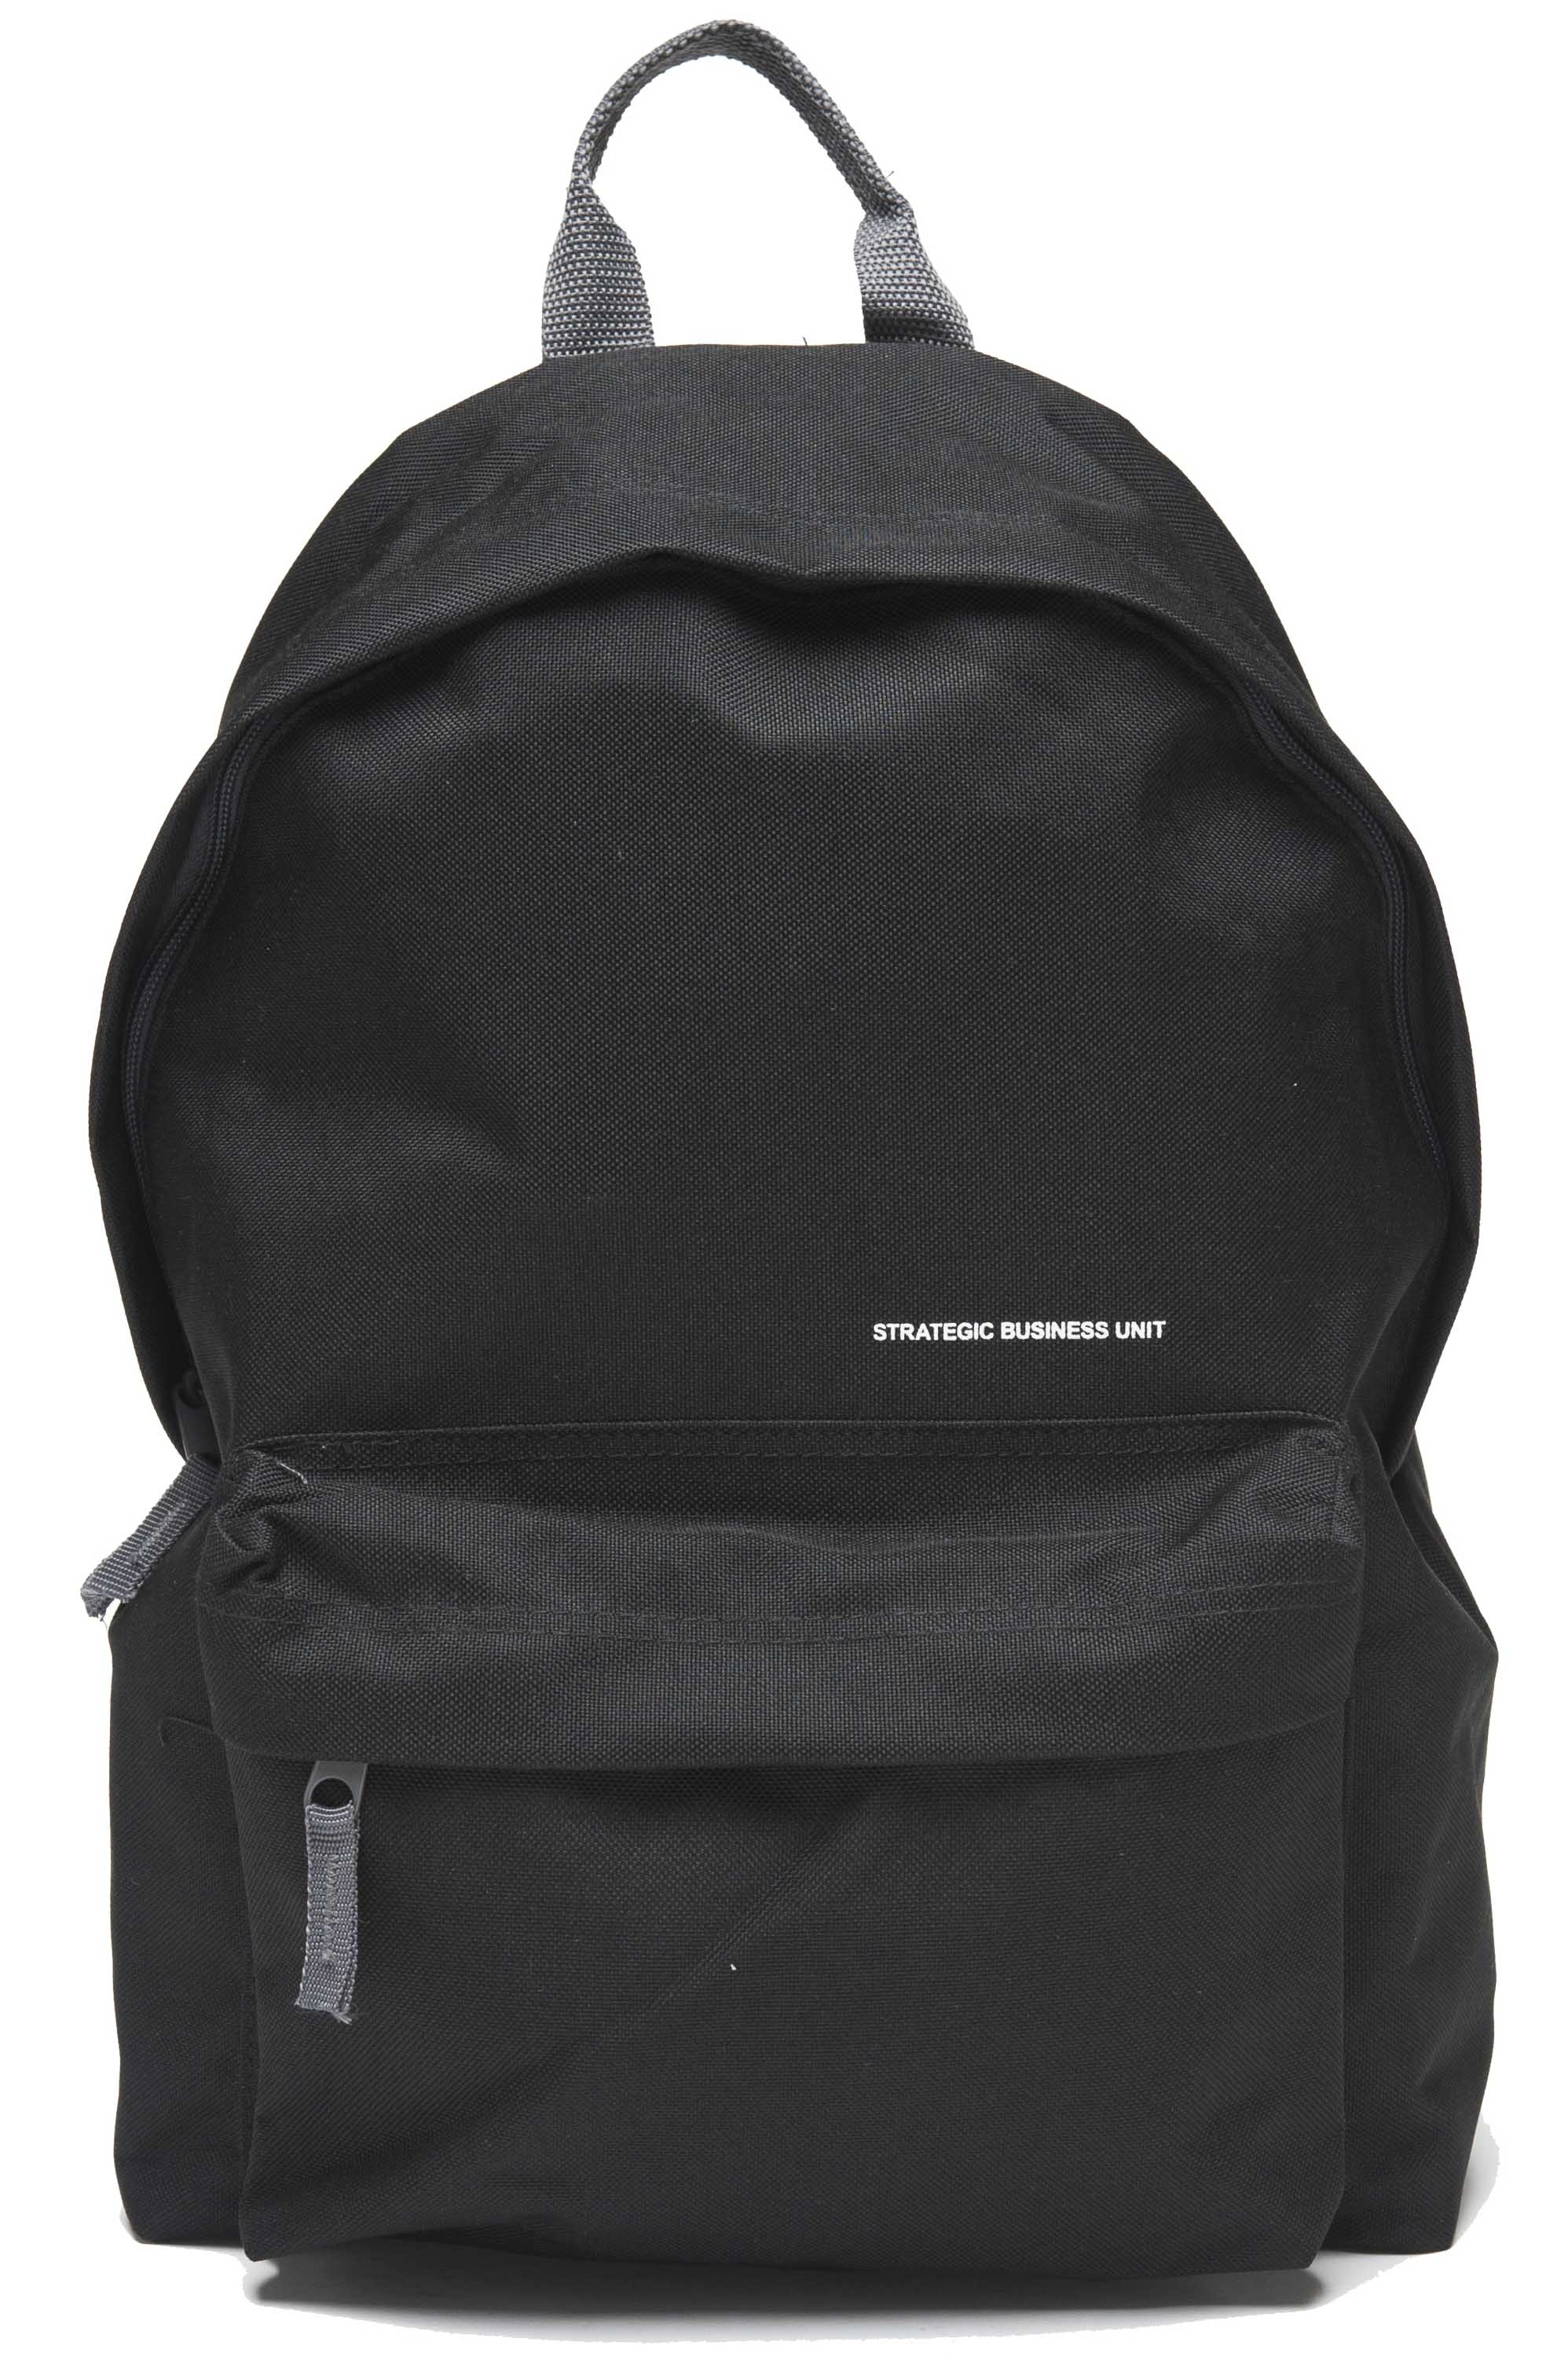 SBU 01038 Functional nylon backpack 01